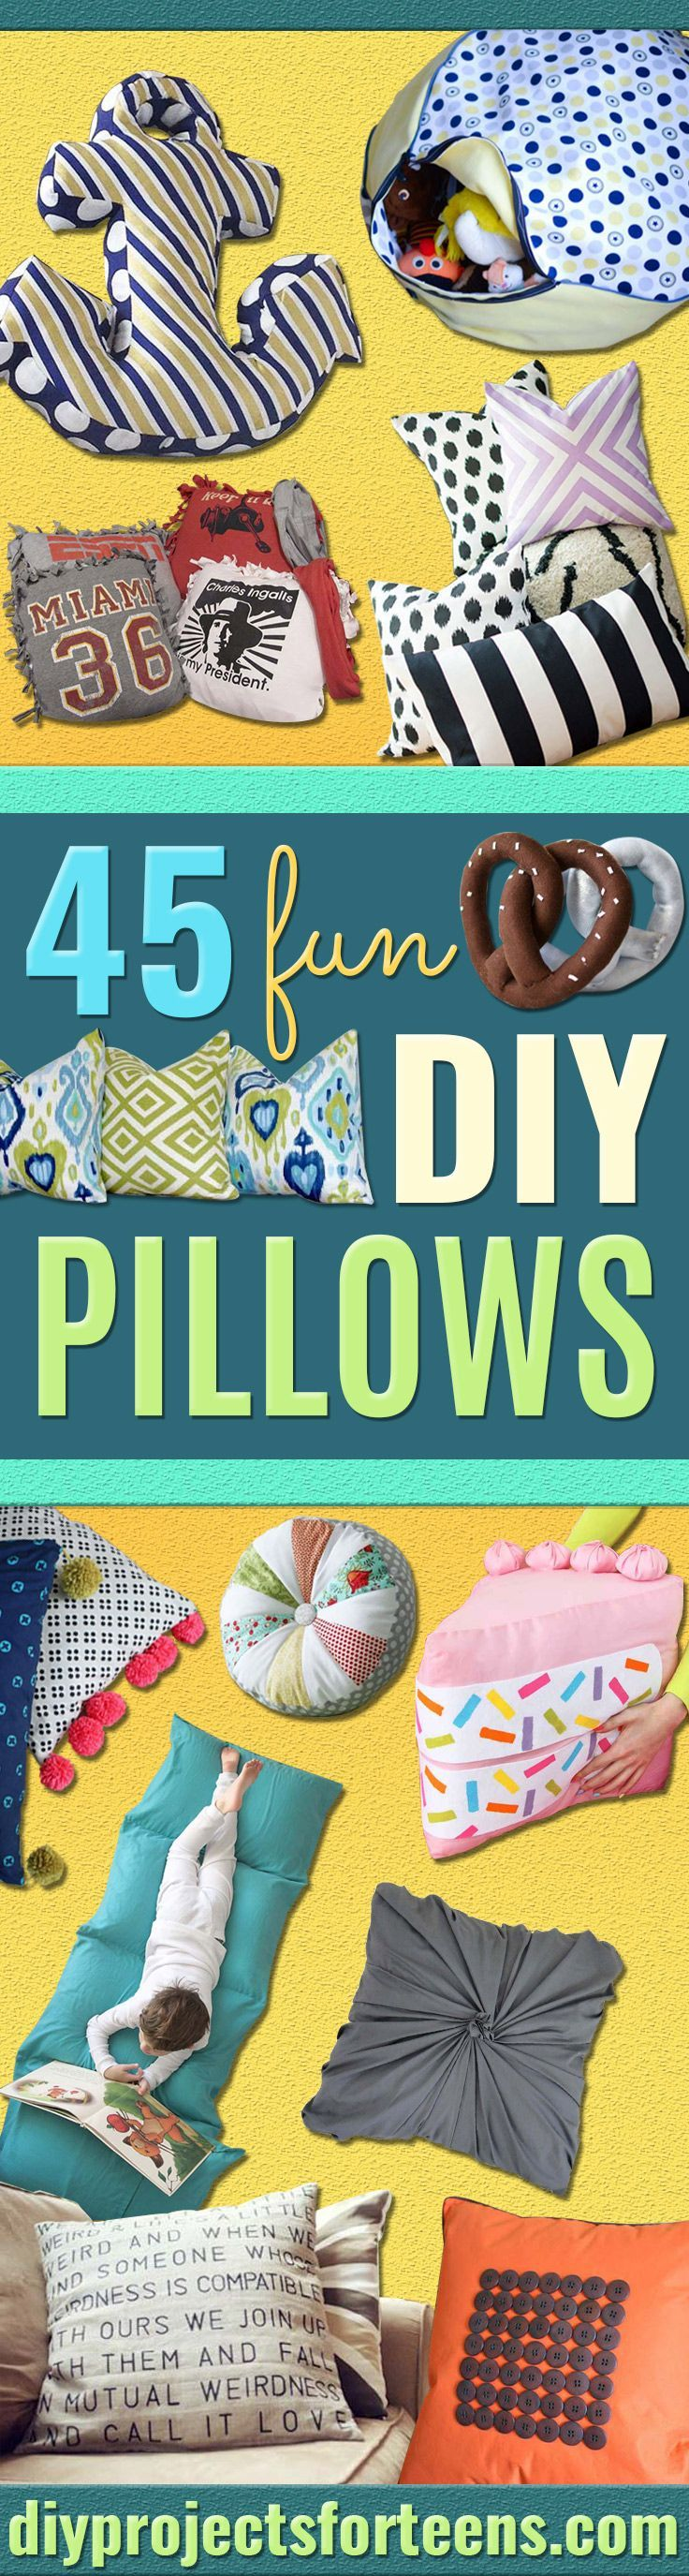 Bedroom Decor Diy Projects 162 best diy projects for teens images on pinterest | teen crafts